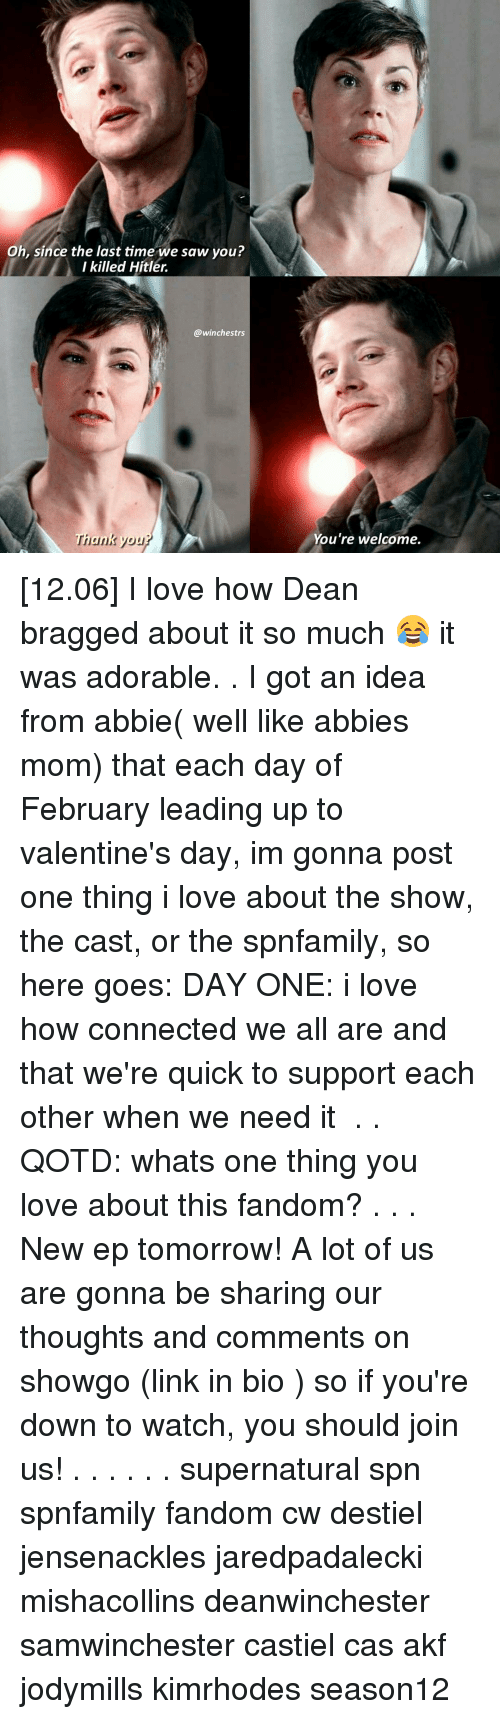 got an idea: Oh, since the last time we saw you?  I killed Hitler.  @winchestrs  Thank you  You're welcome. [12.06] I love how Dean bragged about it so much 😂 it was adorable. . I got an idea from abbie( well like abbies mom) that each day of February leading up to valentine's day, im gonna post one thing i love about the show, the cast, or the spnfamily, so here goes: DAY ONE: i love how connected we all are and that we're quick to support each other when we need it ♡ . . QOTD: whats one thing you love about this fandom? . . . New ep tomorrow! A lot of us are gonna be sharing our thoughts and comments on showgo (link in bio ) so if you're down to watch, you should join us!♡ . . . . . . supernatural spn spnfamily fandom cw destiel jensenackles jaredpadalecki mishacollins deanwinchester samwinchester castiel cas akf jodymills kimrhodes season12